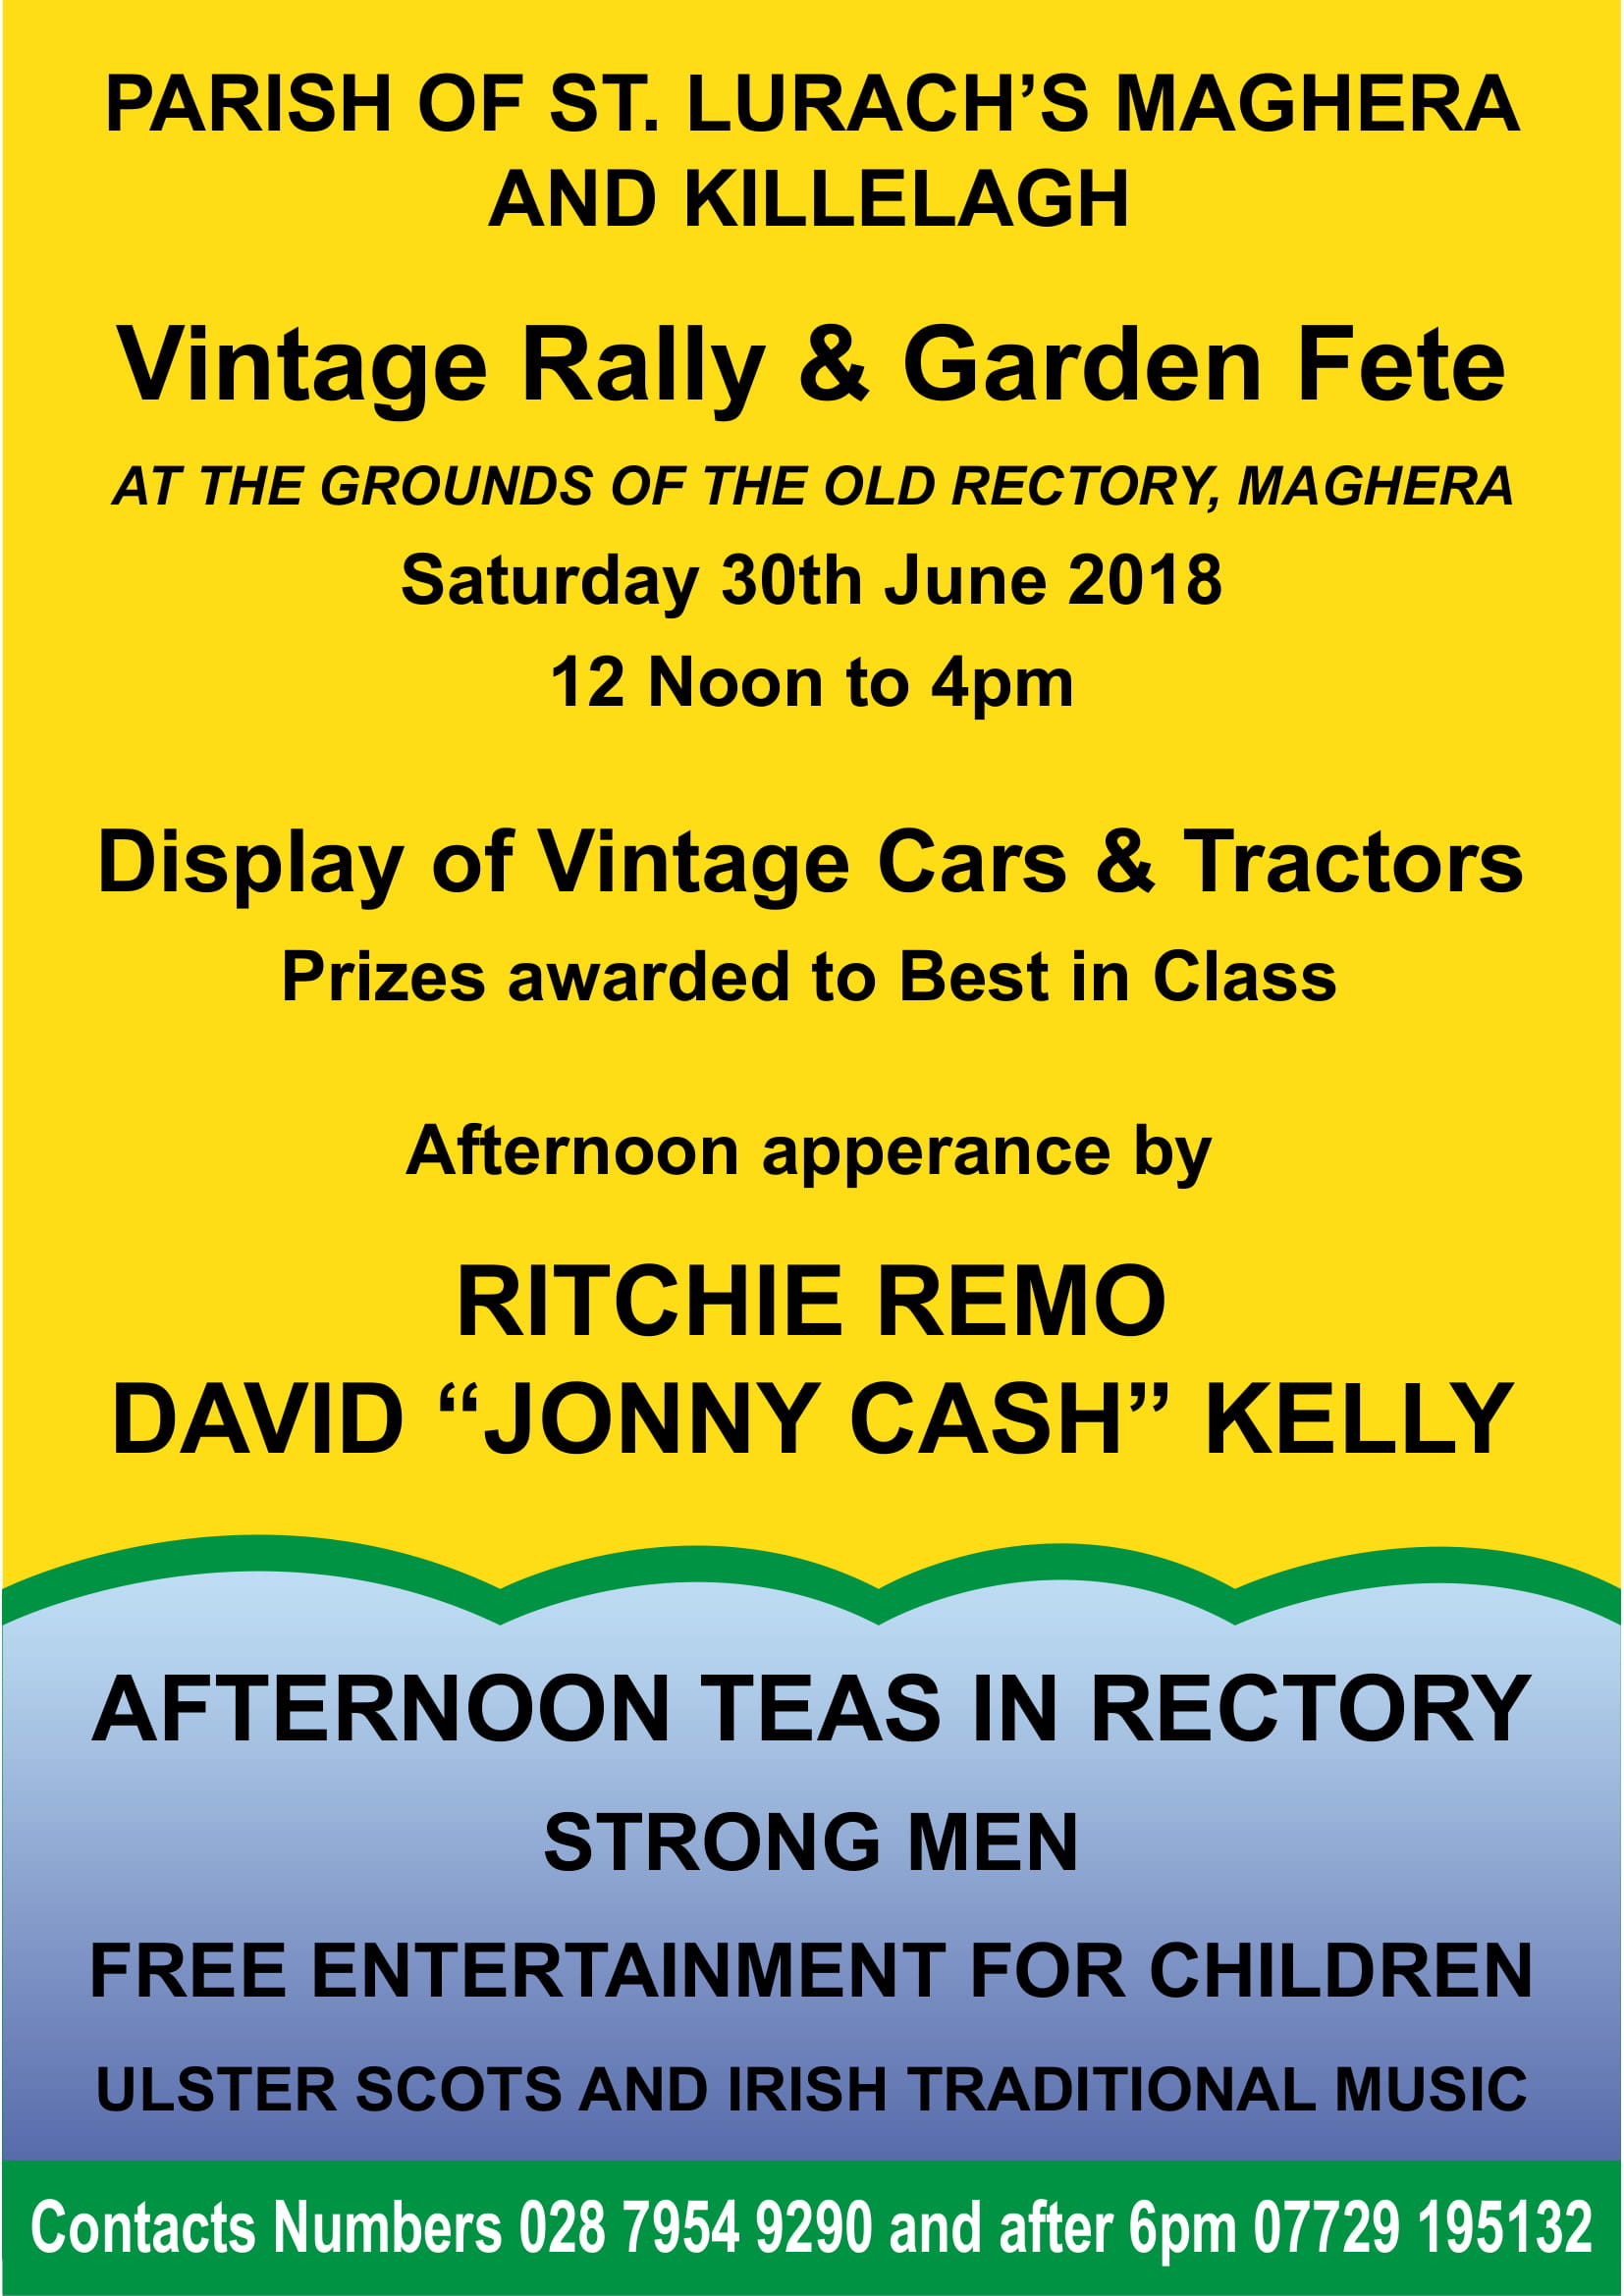 The Parish of St. Lurach's, Maghera & Killelagh Garden Fete & Vintage Rally